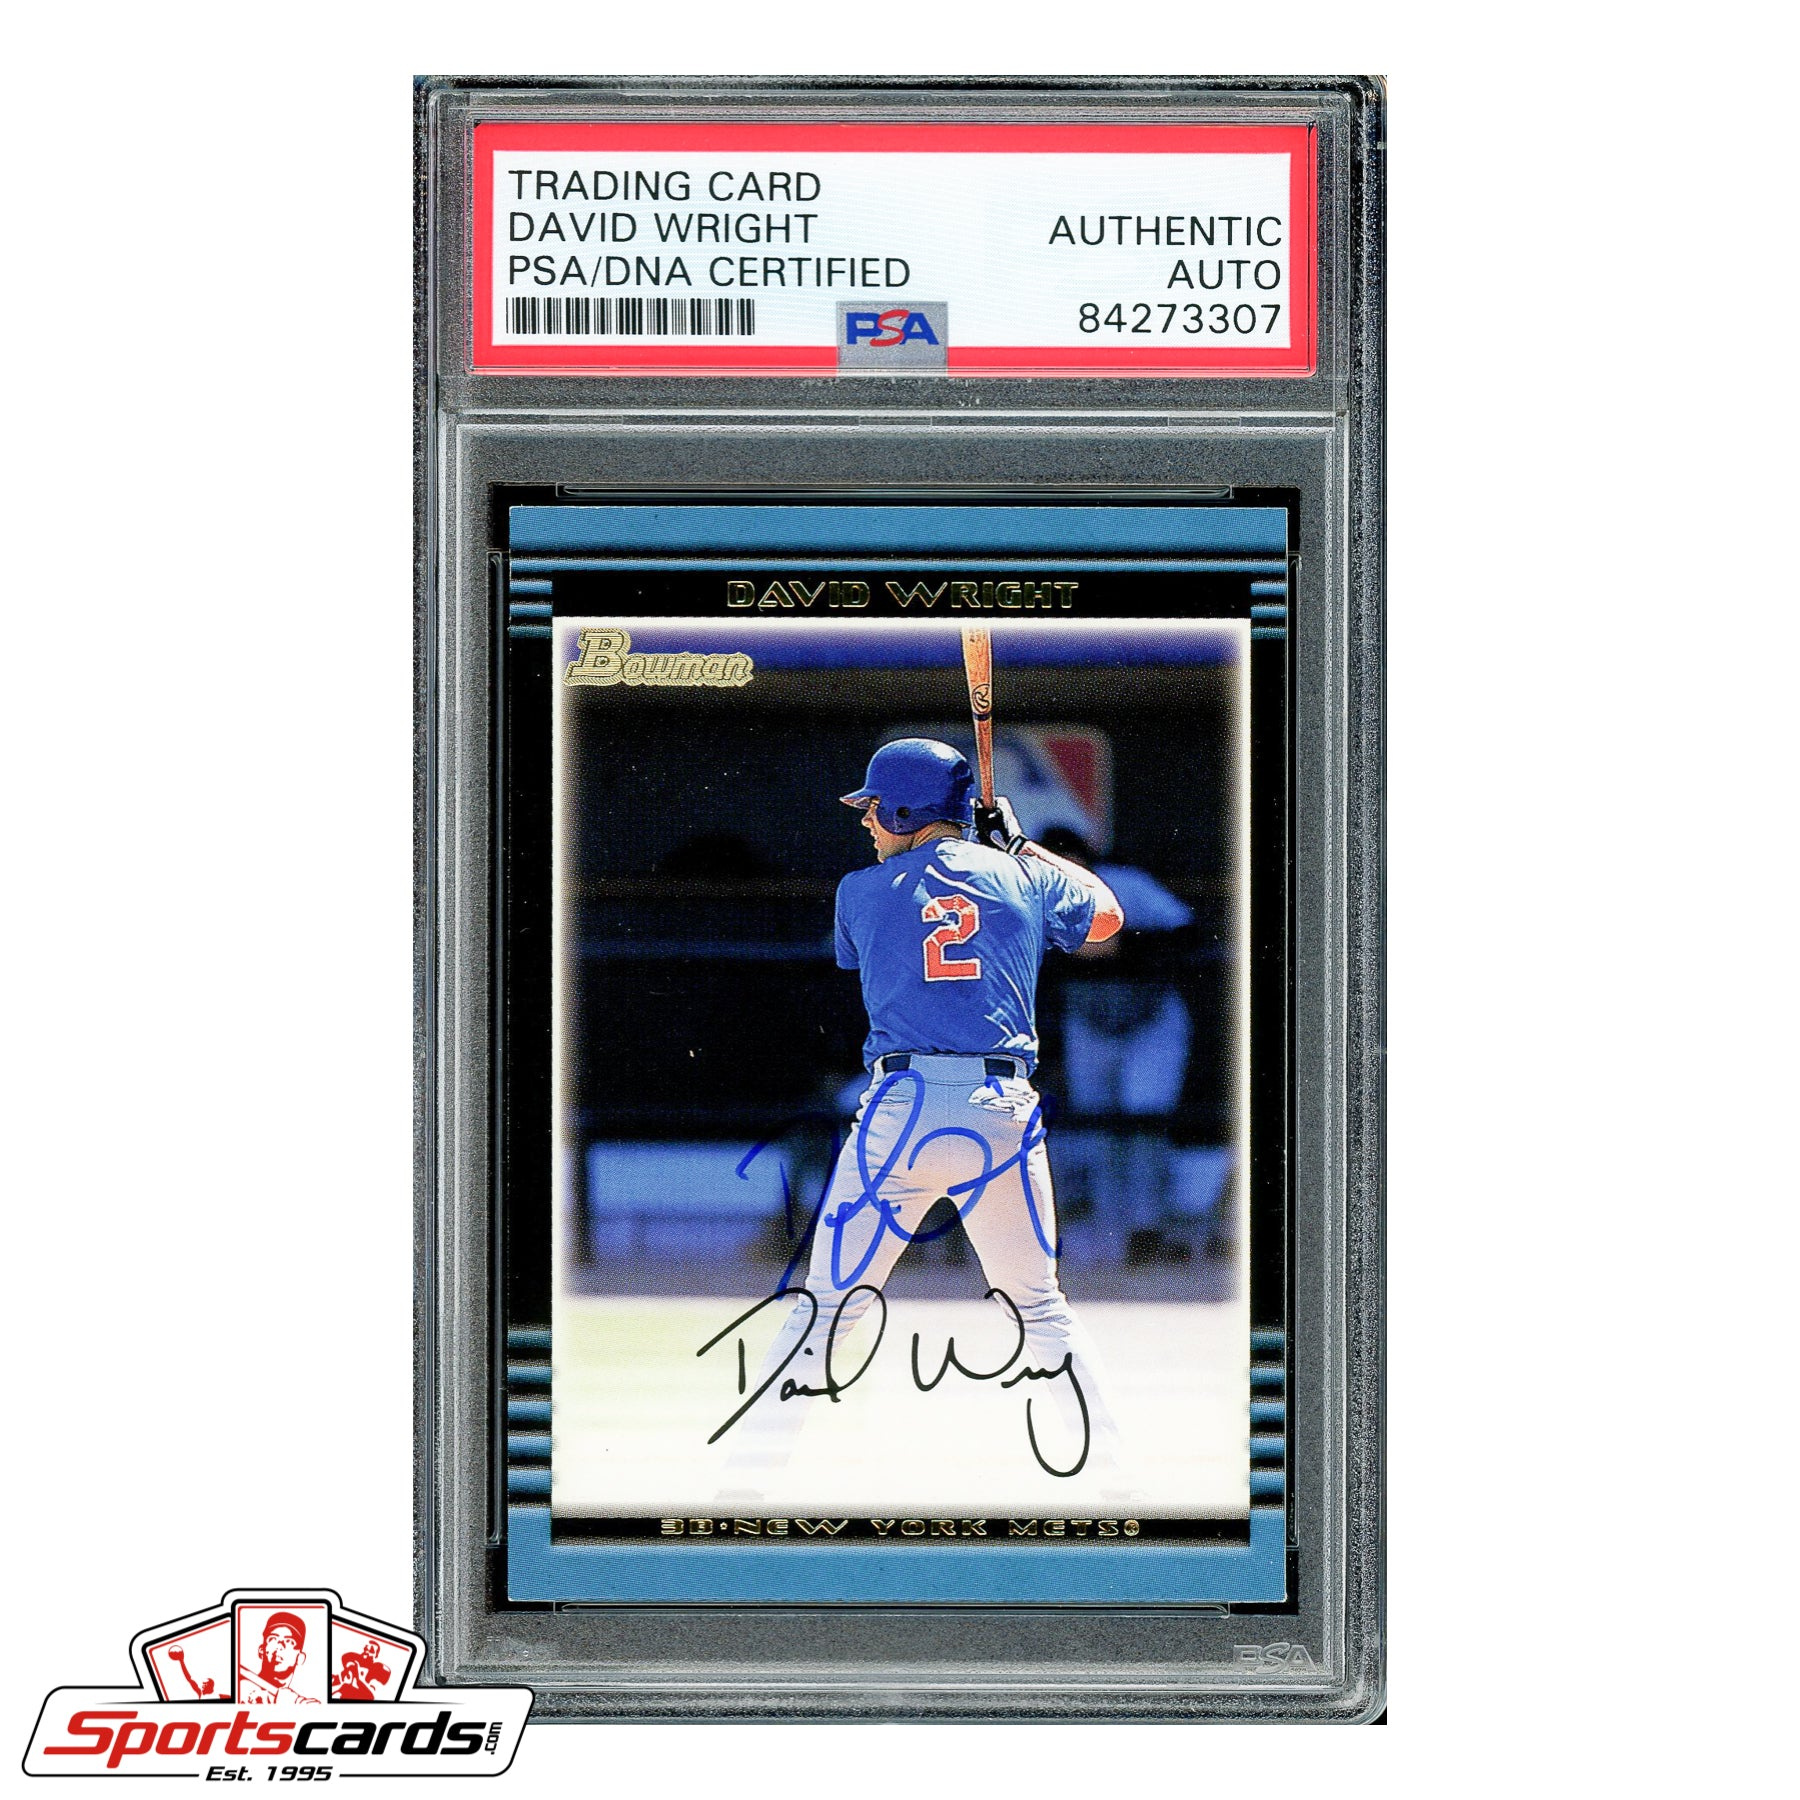 David Wright Signed Auto 2002 Bowman RC #381 PSA